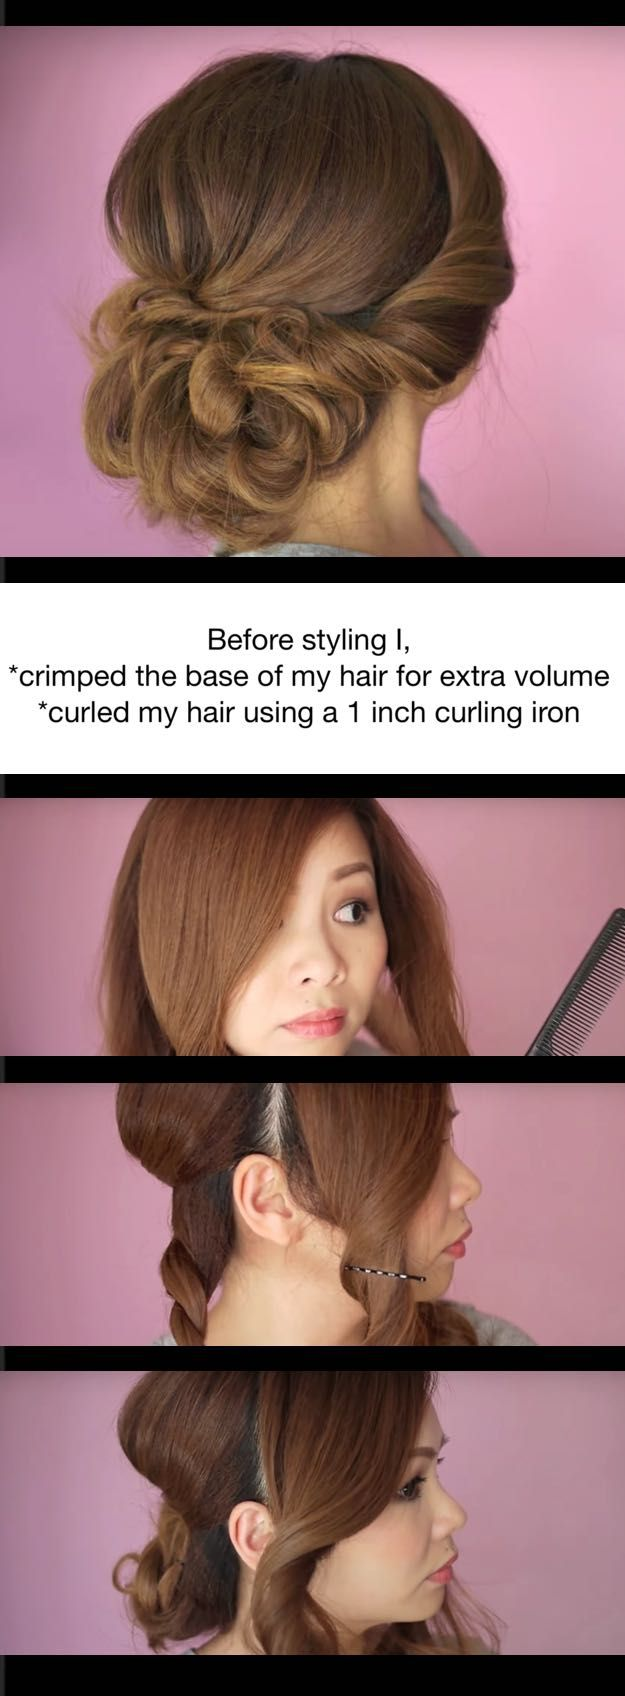 Quick and Easy Updo Hairstyles - Easy Summer Twist Updo Hair Tutorial - Hair Hacks And Popular Haircuts For The Lazy Girl. Hairdos and Up Dos Including The Half Up, Chignons, Twists, Beauty Tips, and DIY Tutorial Videos For Bangs, Products, Curls, The Top Knot, Coiffures, and Shoulder Length Hair - https://www.thegoddess.com/quick-easy-updo-hairstyles